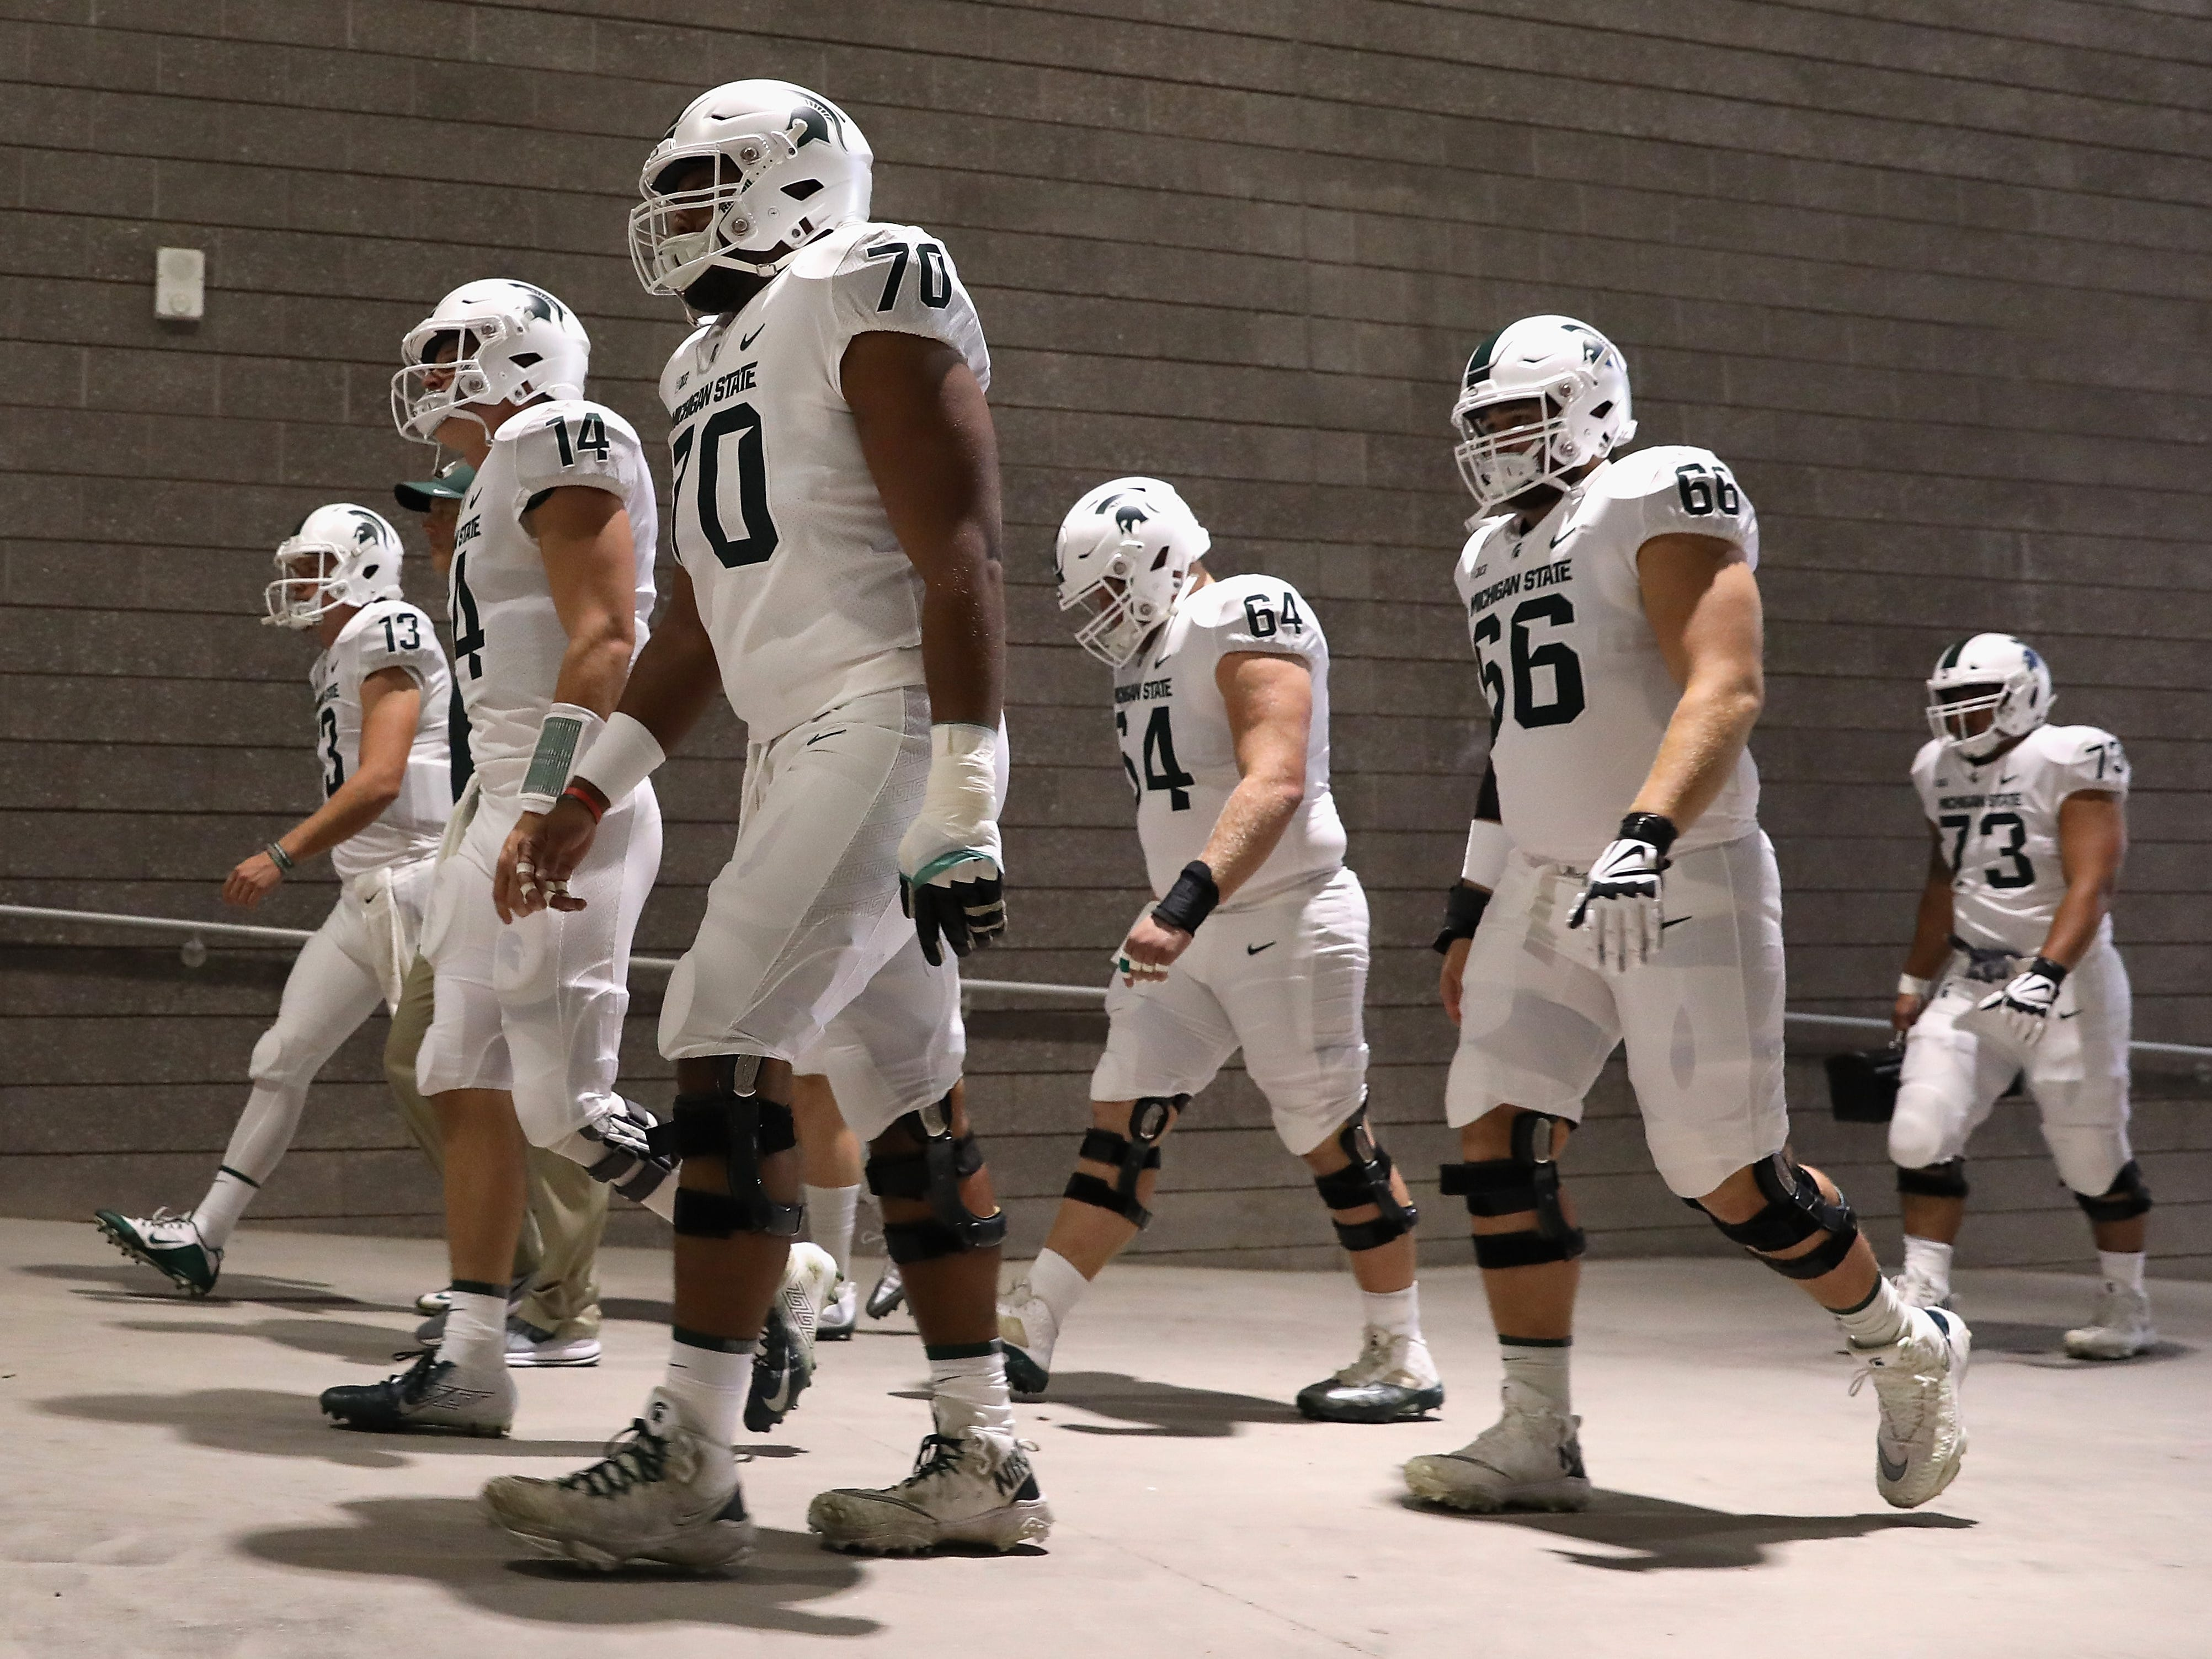 (L-R) Offensive lineman Jacob Isaia #73, quarterback Brian Lewerke #14 and offensive lineman Tyler Higby #70 of the Michigan State Spartans lead teammates out of the tunnell before the college football game against the Arizona State Sun Devils at Sun Devil Stadium on September 8, 2018 in Tempe, Arizona.